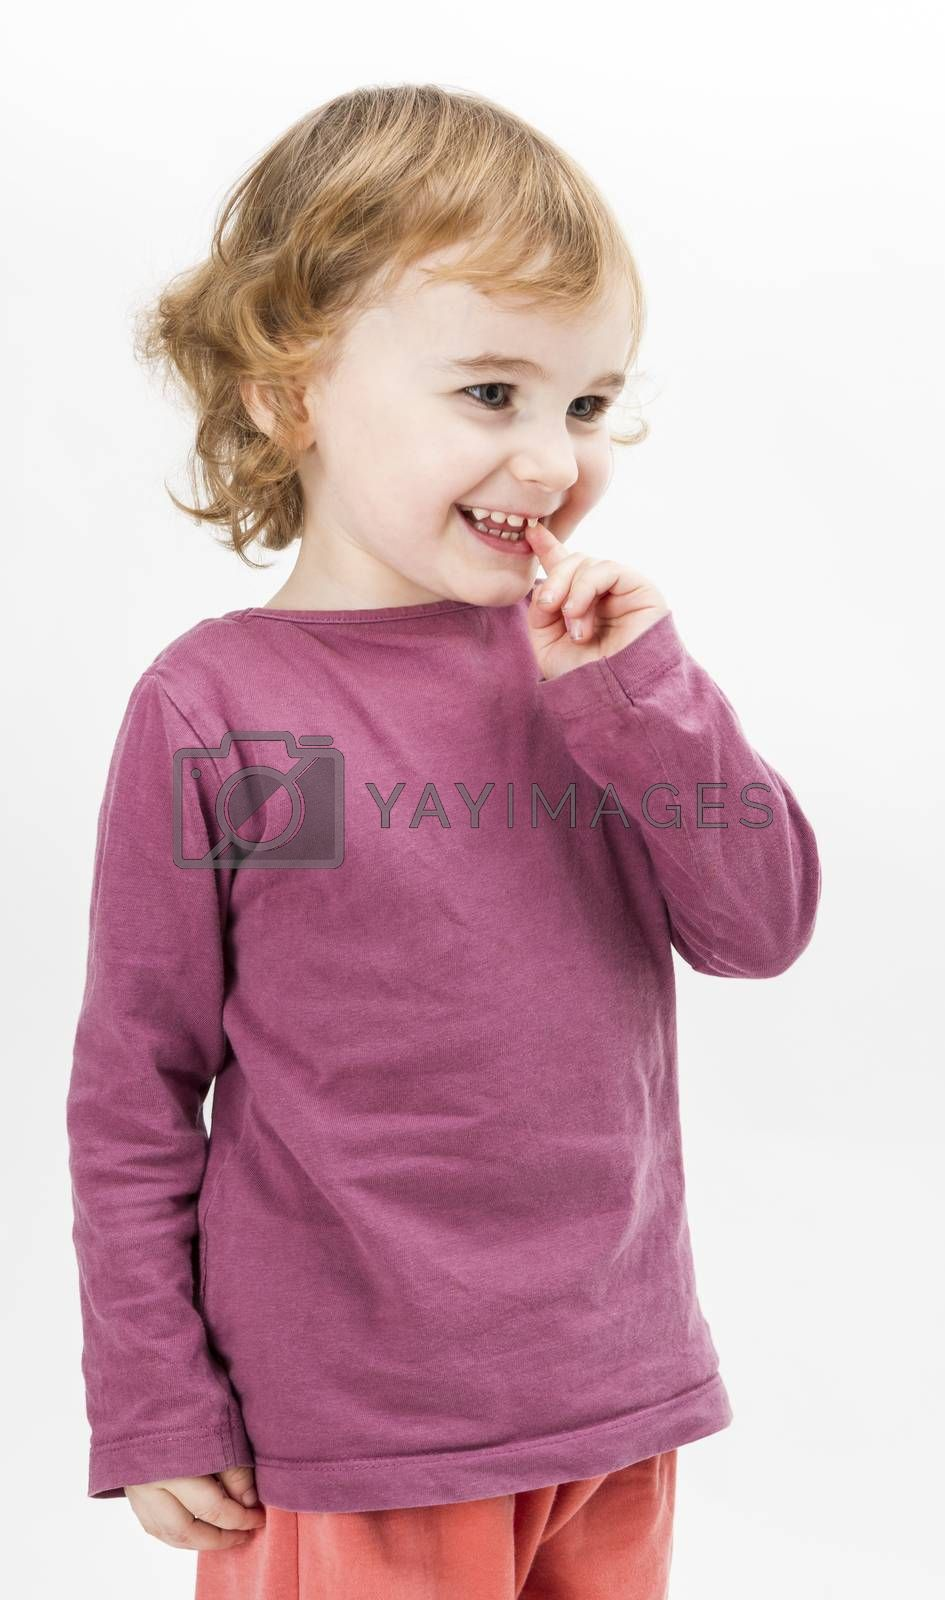 abashed caucasian girl looking to side. vertical image in light grey background